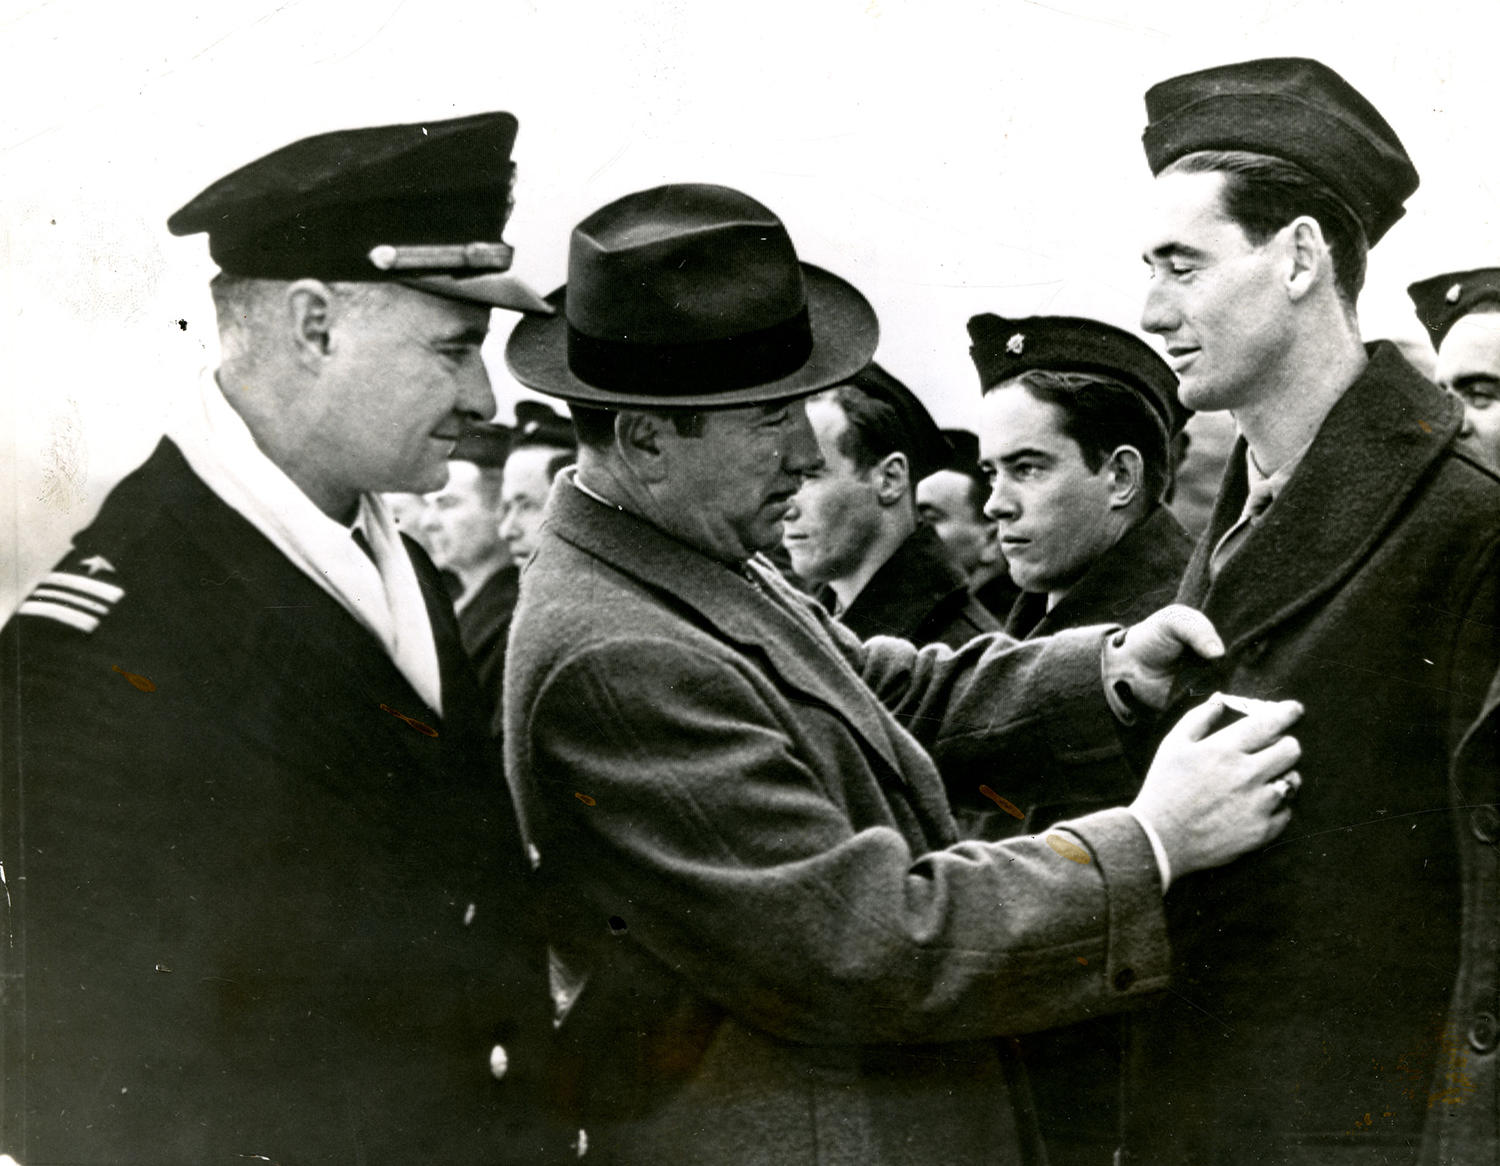 """Ted Williams was one of only 10 percent of World War II era Navy flyers to receive their wings and finished top in his class at flight school. <a href=""""http://collection.baseballhall.org/islandora/object/islandora%3A501834"""">PASTIME</a> (National Baseball Hall of Fame)"""